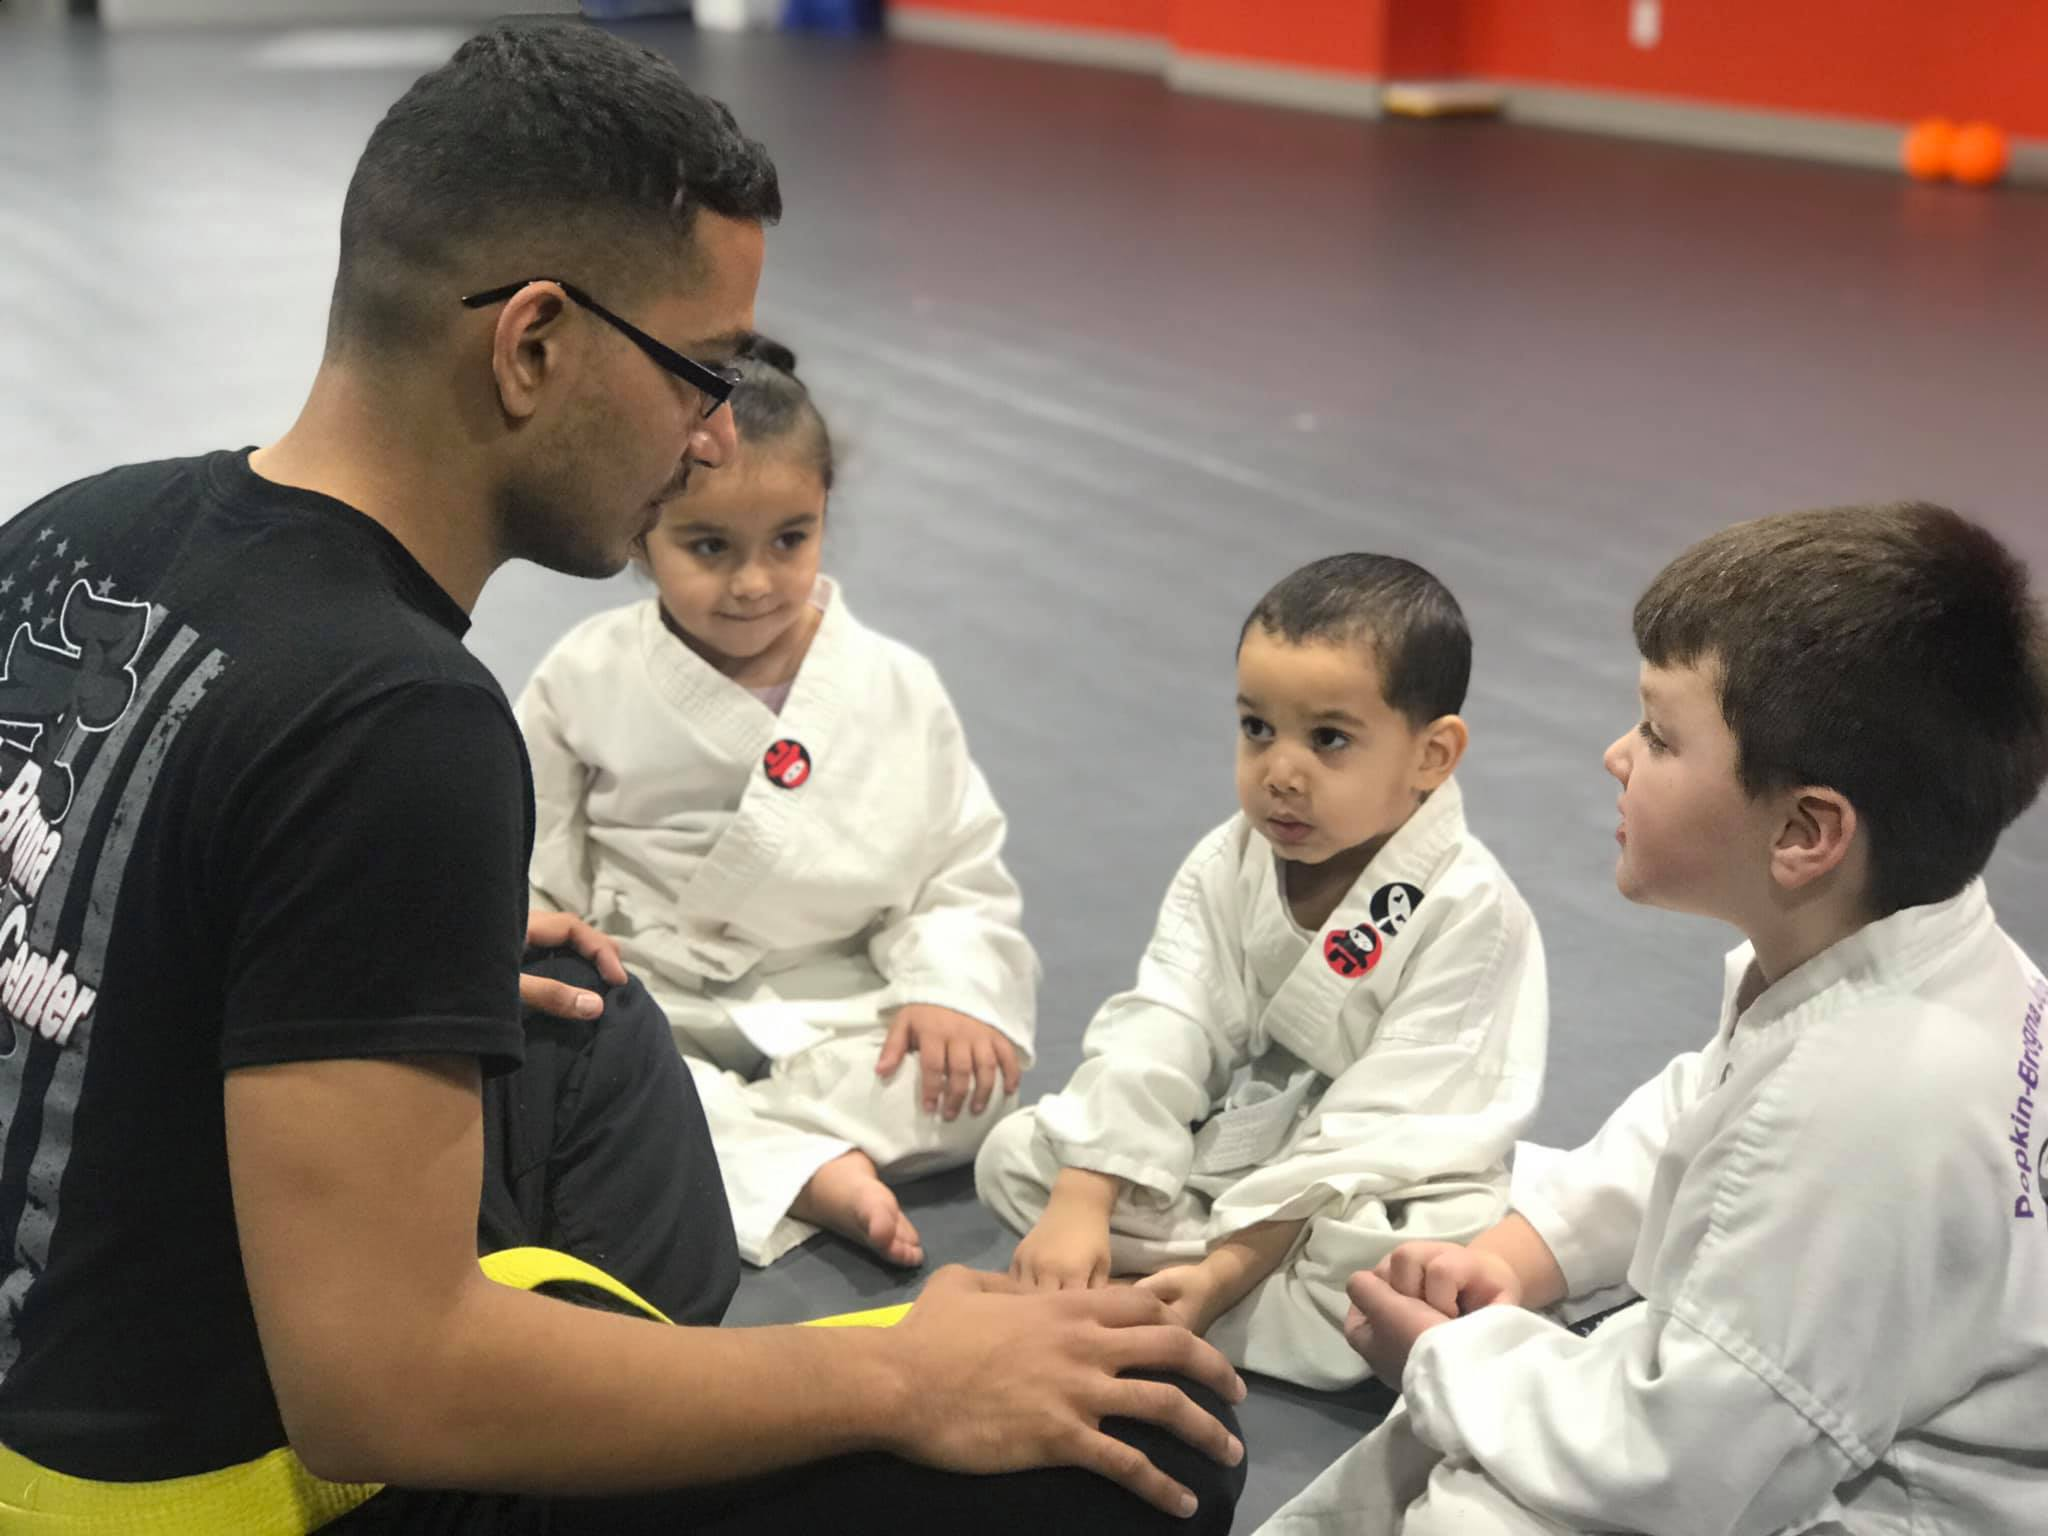 4 Reasons Why You Should Enroll Your Child at Popkin-Brogna Jujitsu